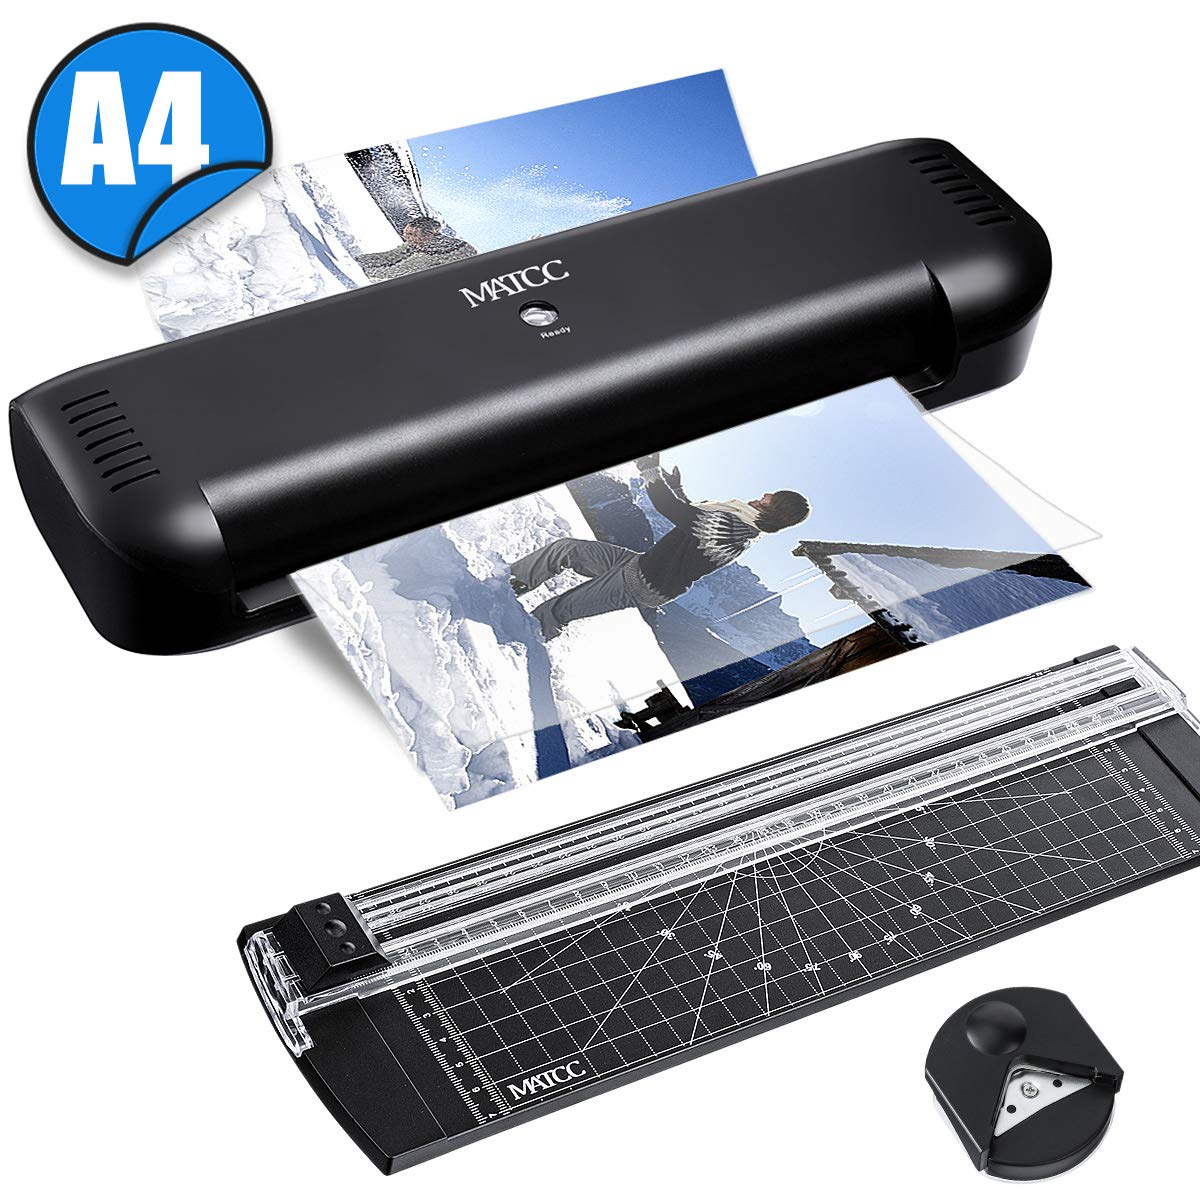 MATCC A4 Laminator Thermal Laminator Machines Trimmer/Corner Rounder Machine 2 Rollers Quick Warm-up Laminator for Home, School, Office Use,Black